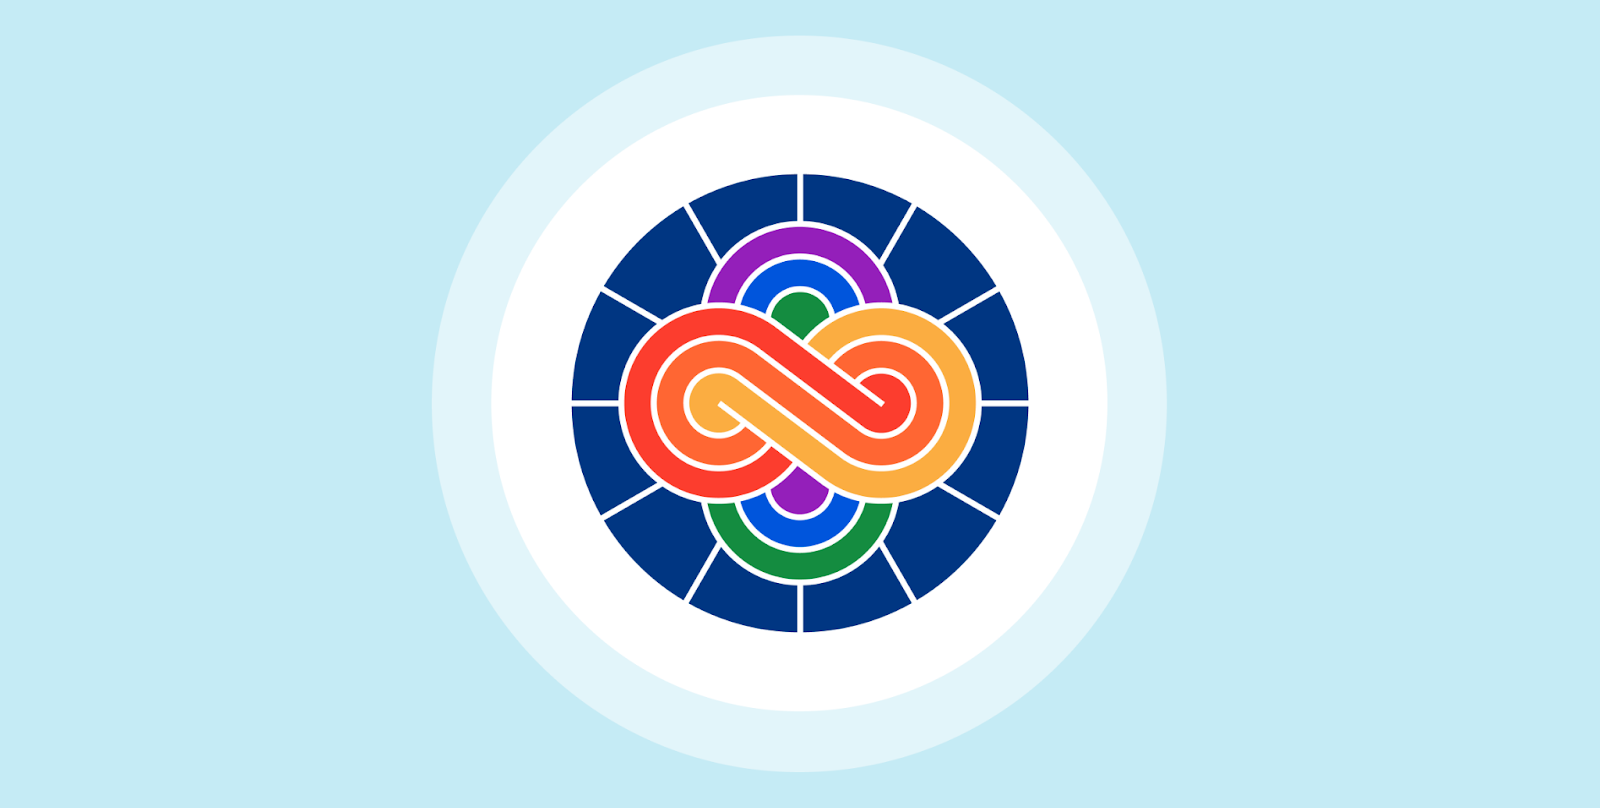 Introducing Flarability, Cloudflare's Accessibility Employee Resource Group